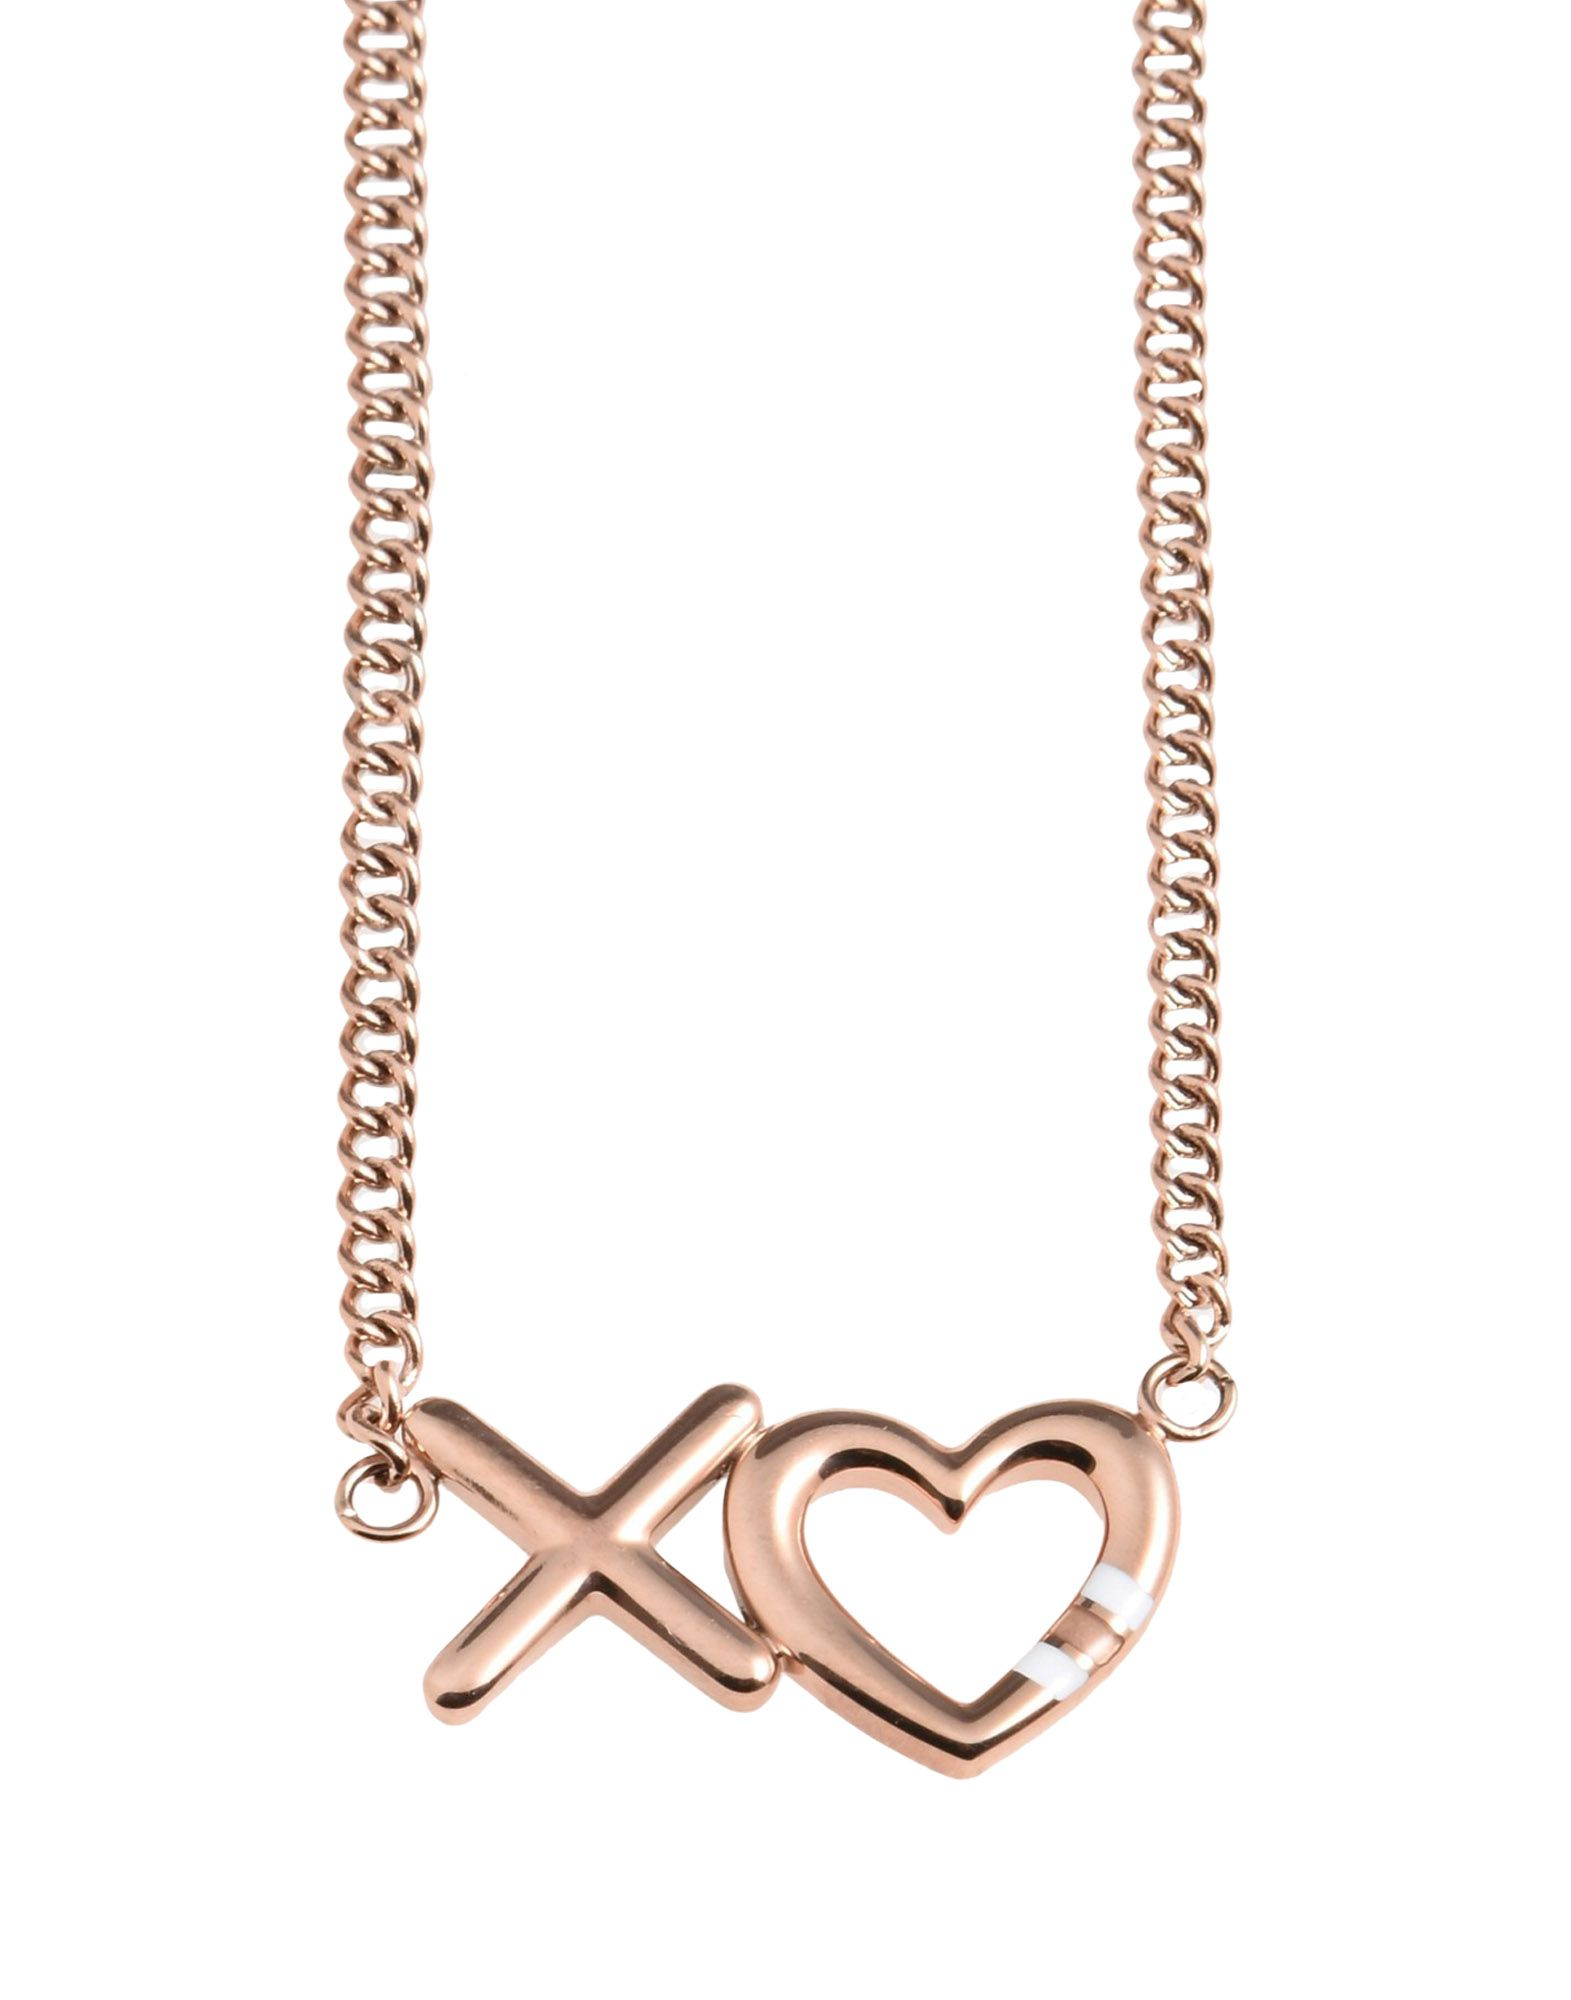 Megan Park JEWELRY - Necklaces su YOOX.COM FG0zIHEVm